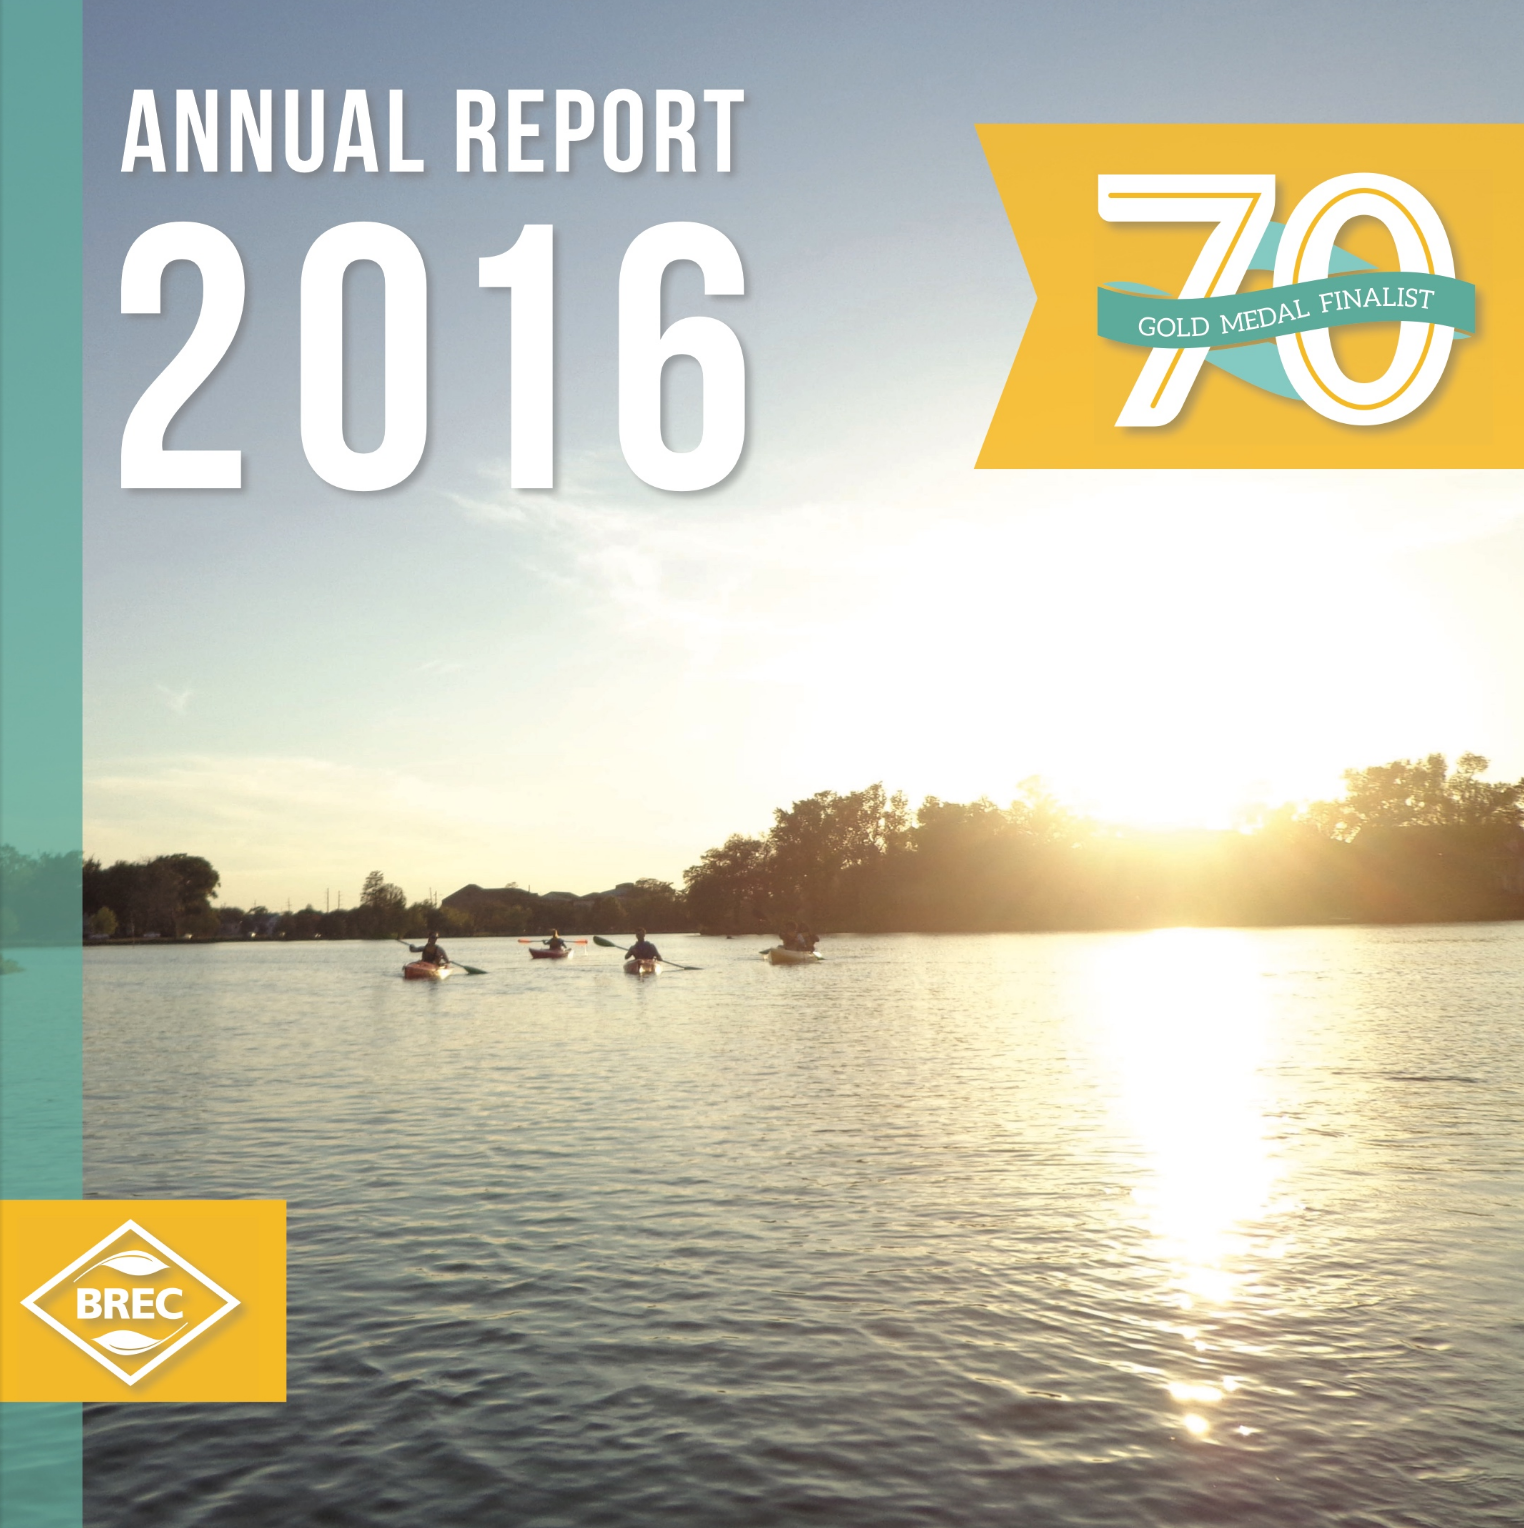 Annual Report 2016 Thumbnail